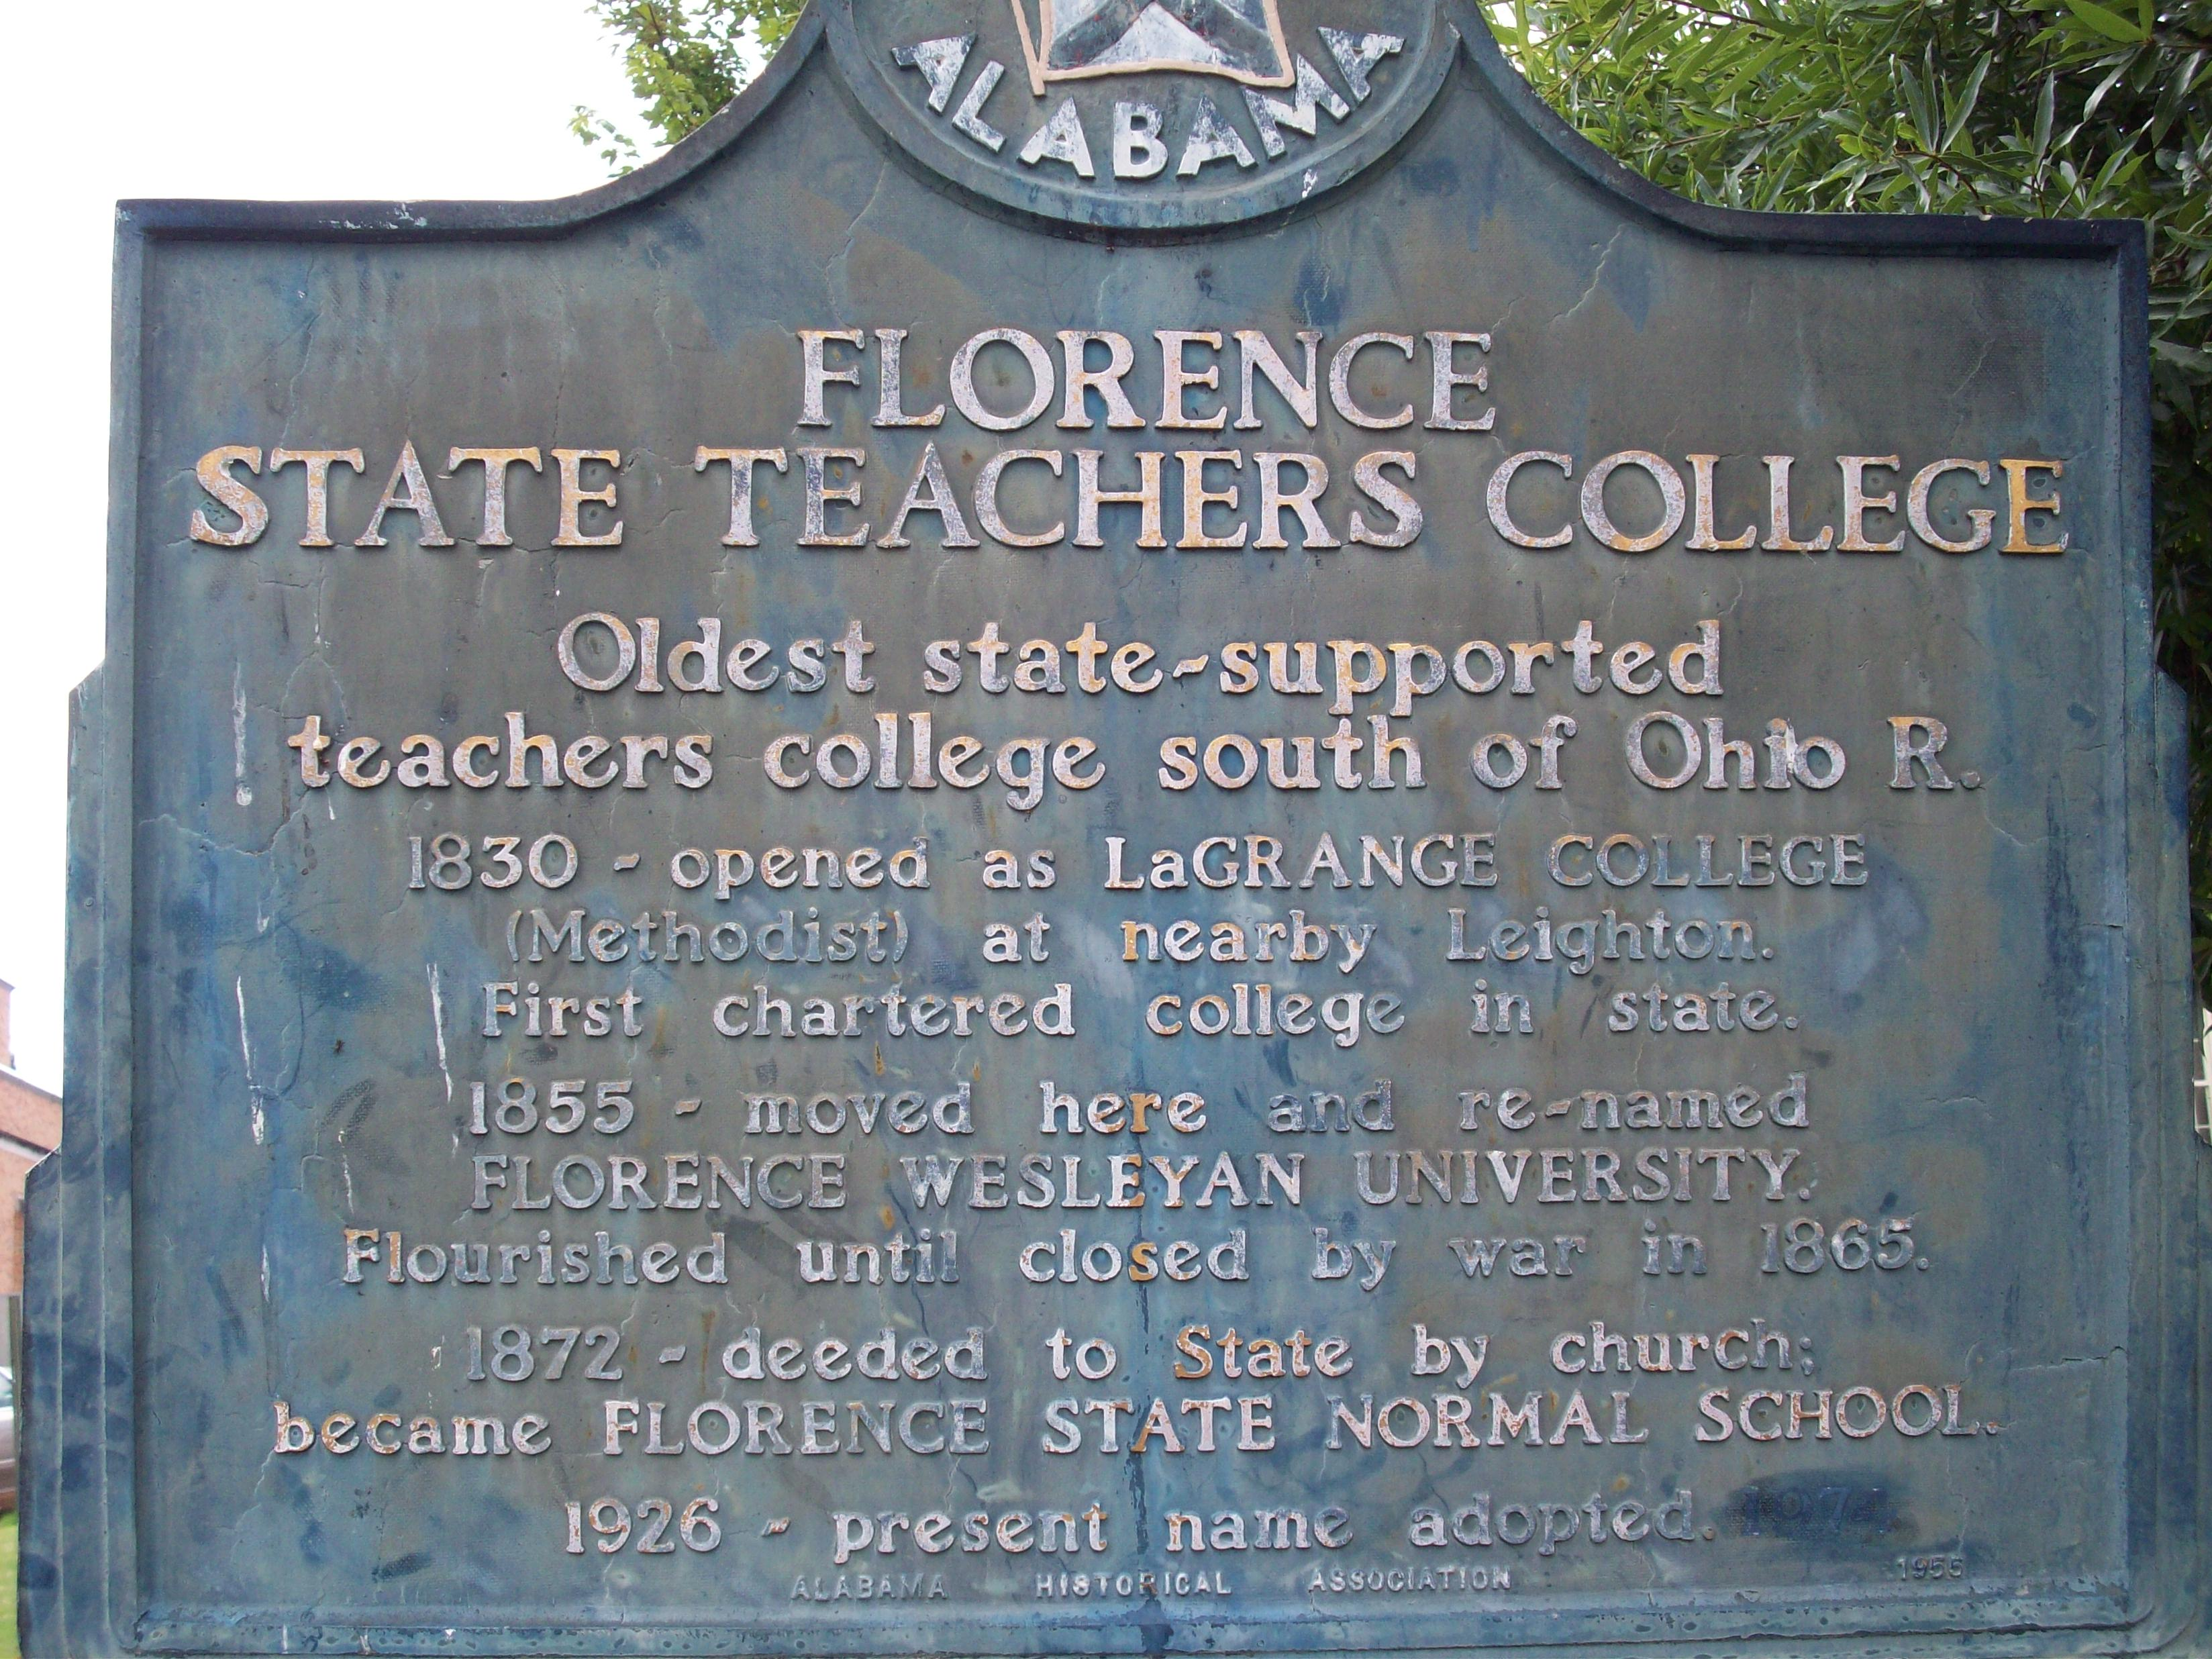 Florence State Teachers College